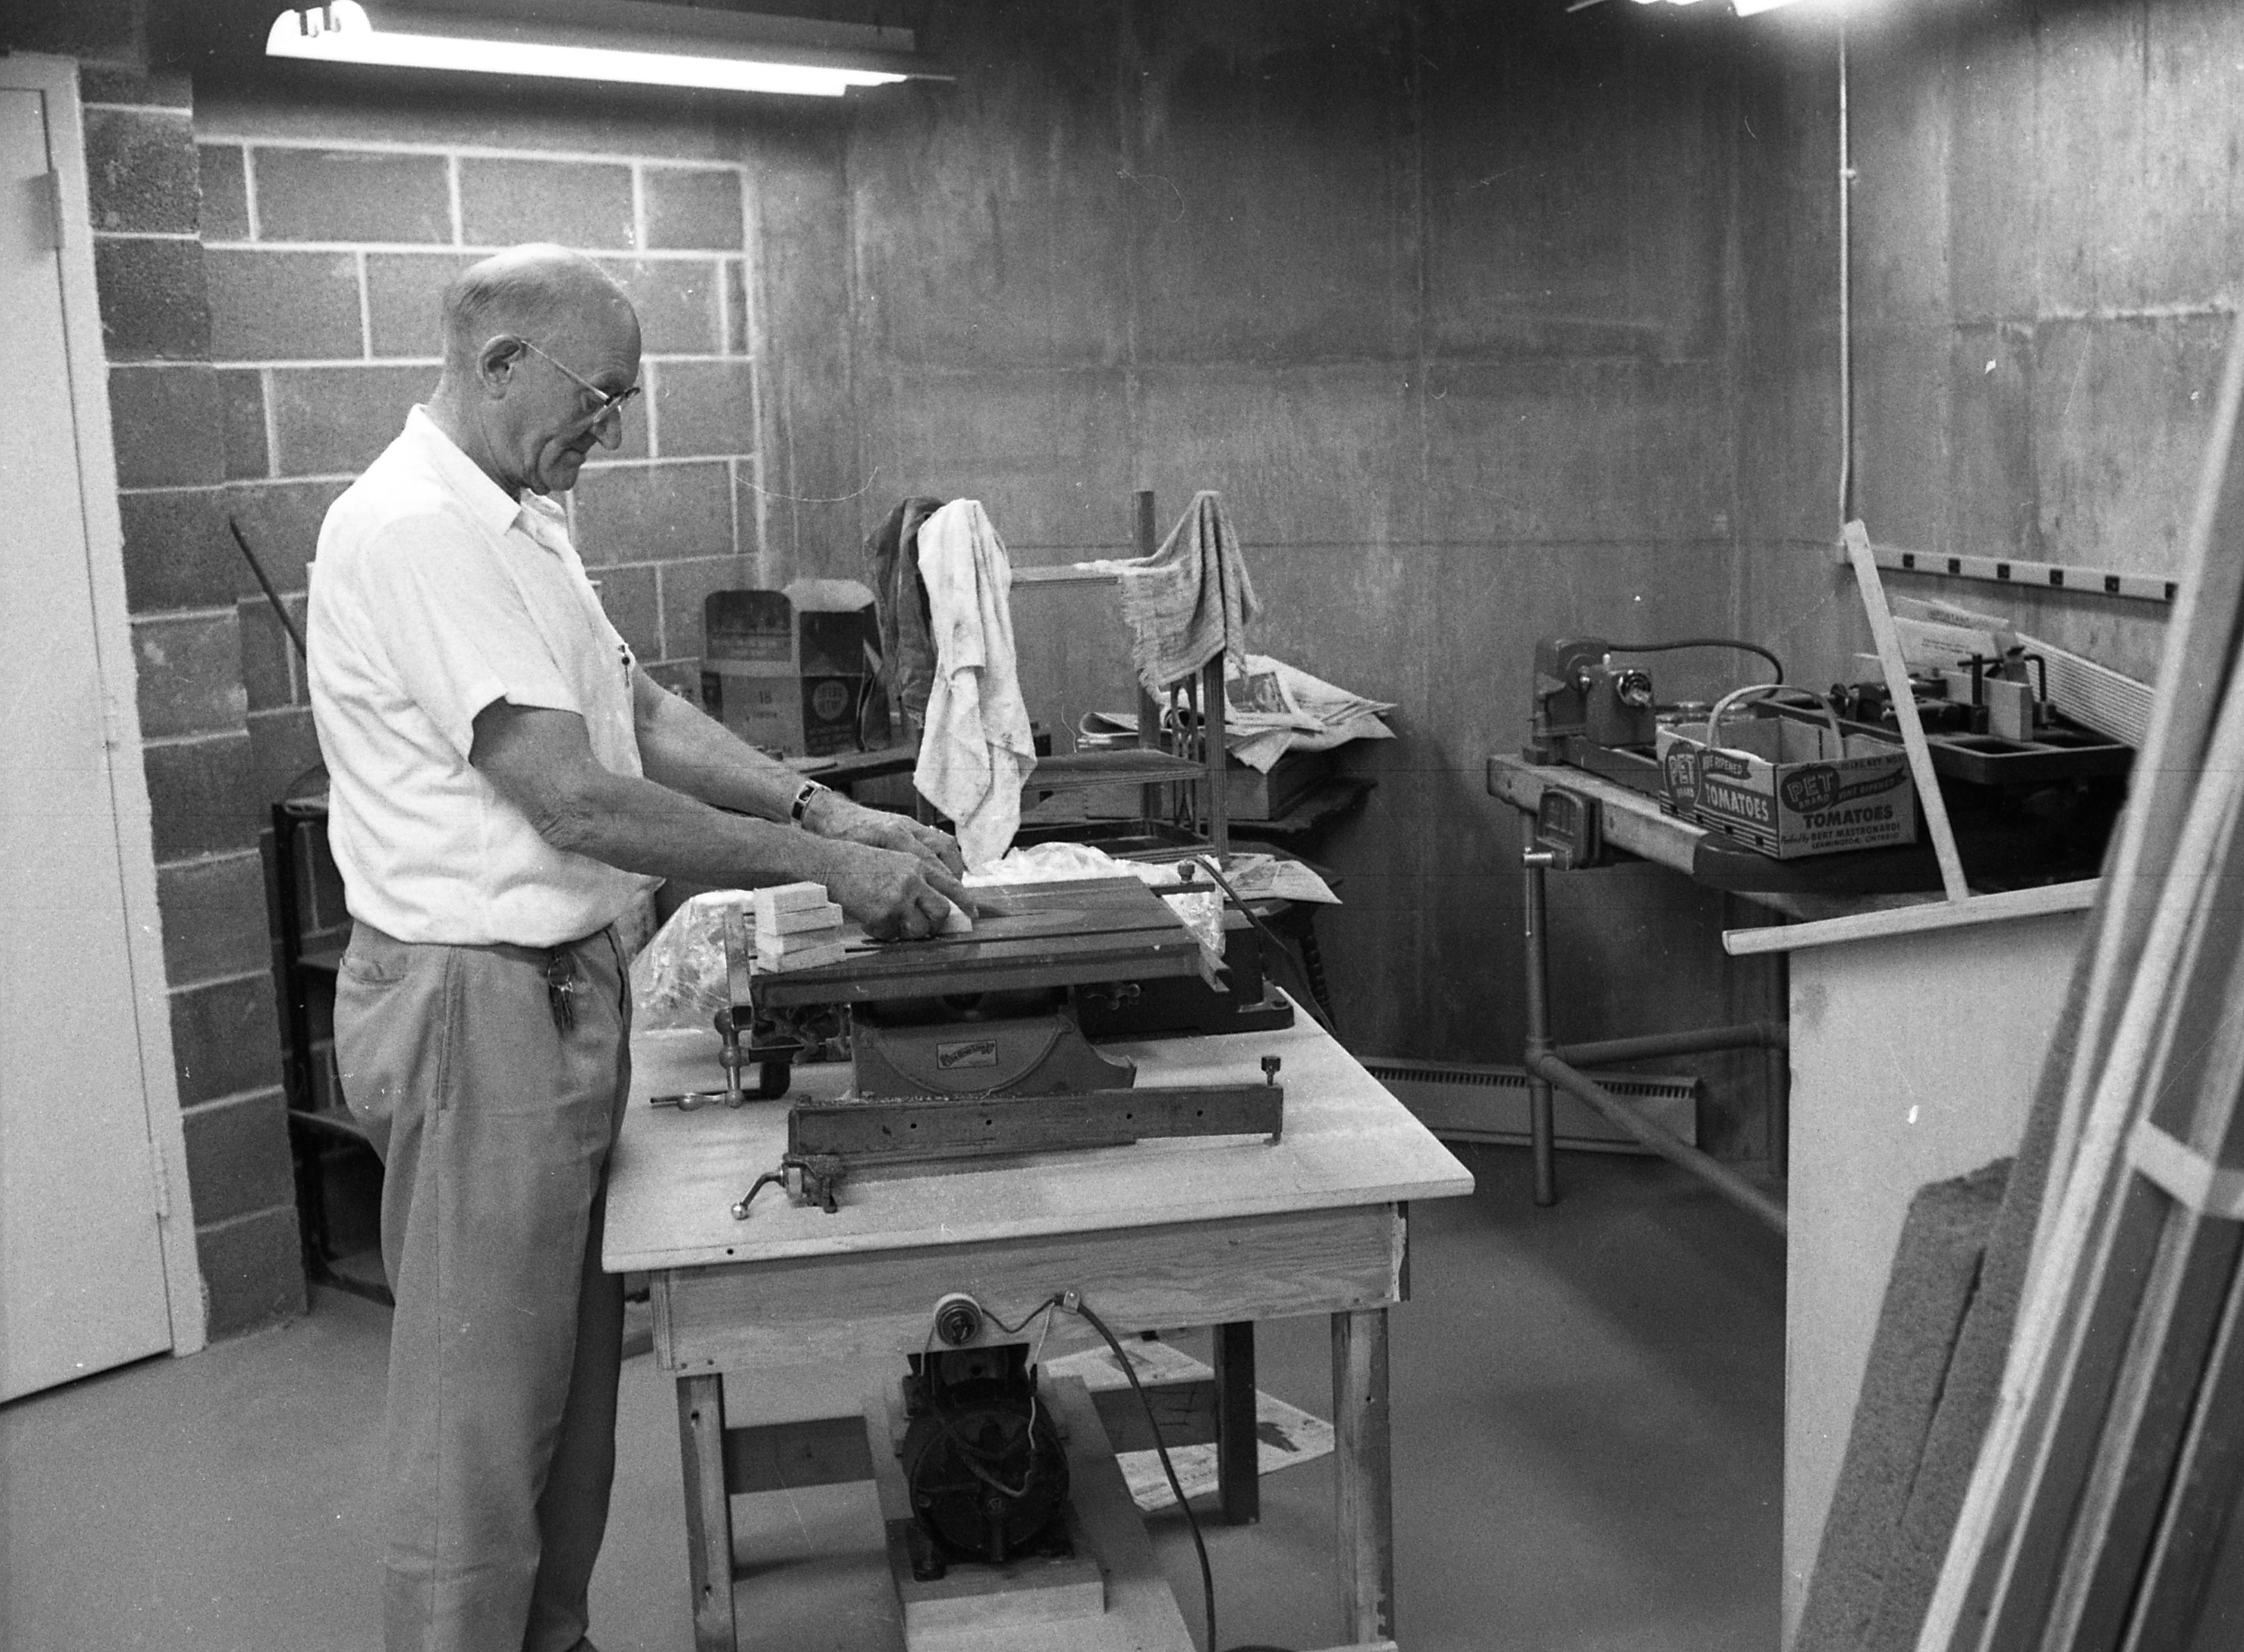 William Foss Busy In Workshop At Lurie Terrace, July 1965 image